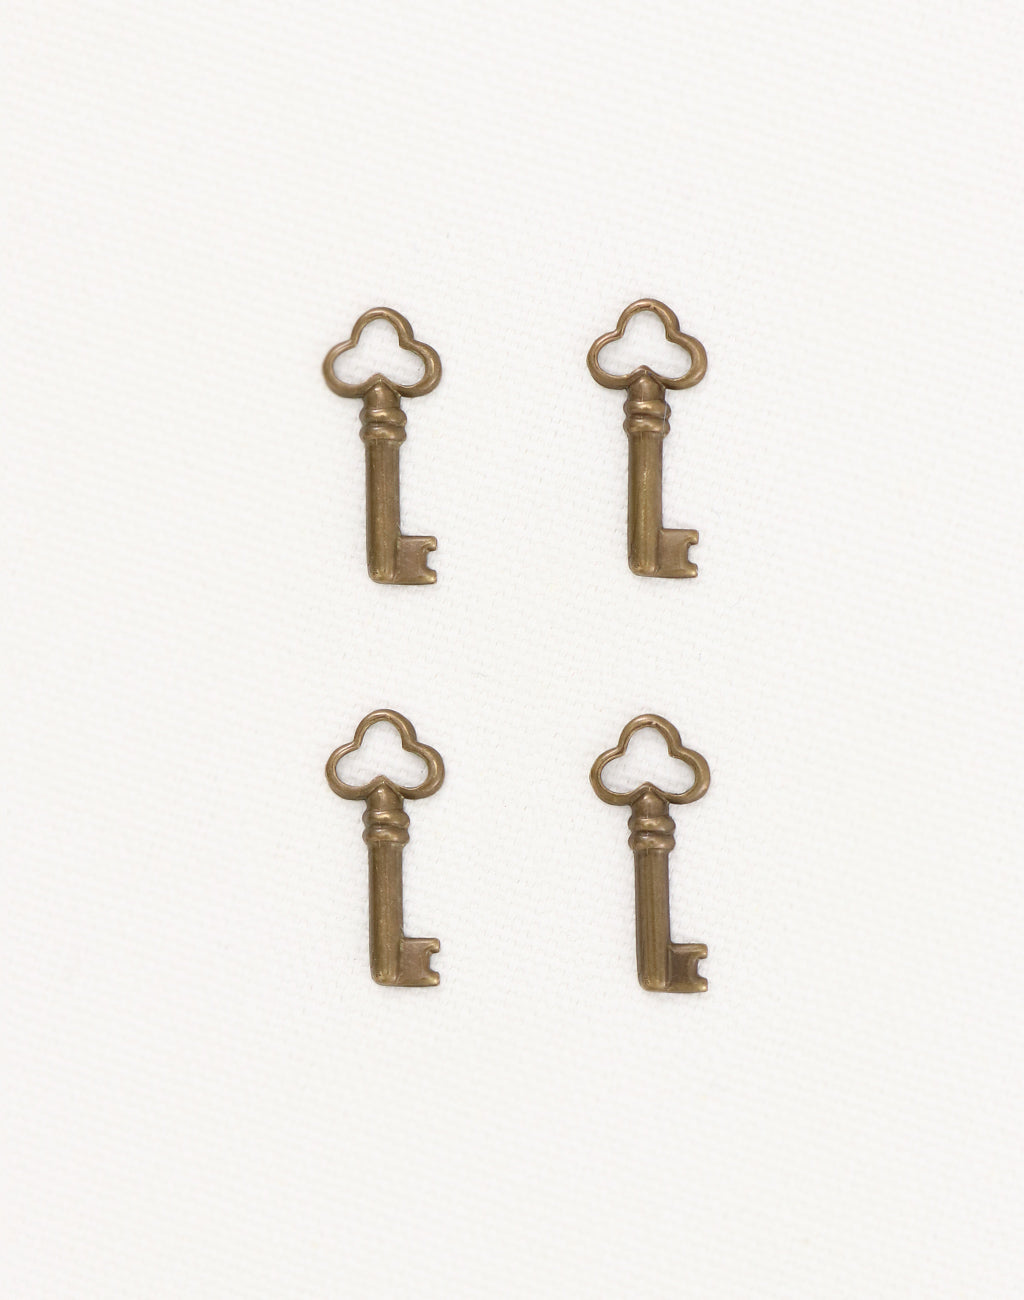 Teensie Key, 18x8mm, (4pcs)